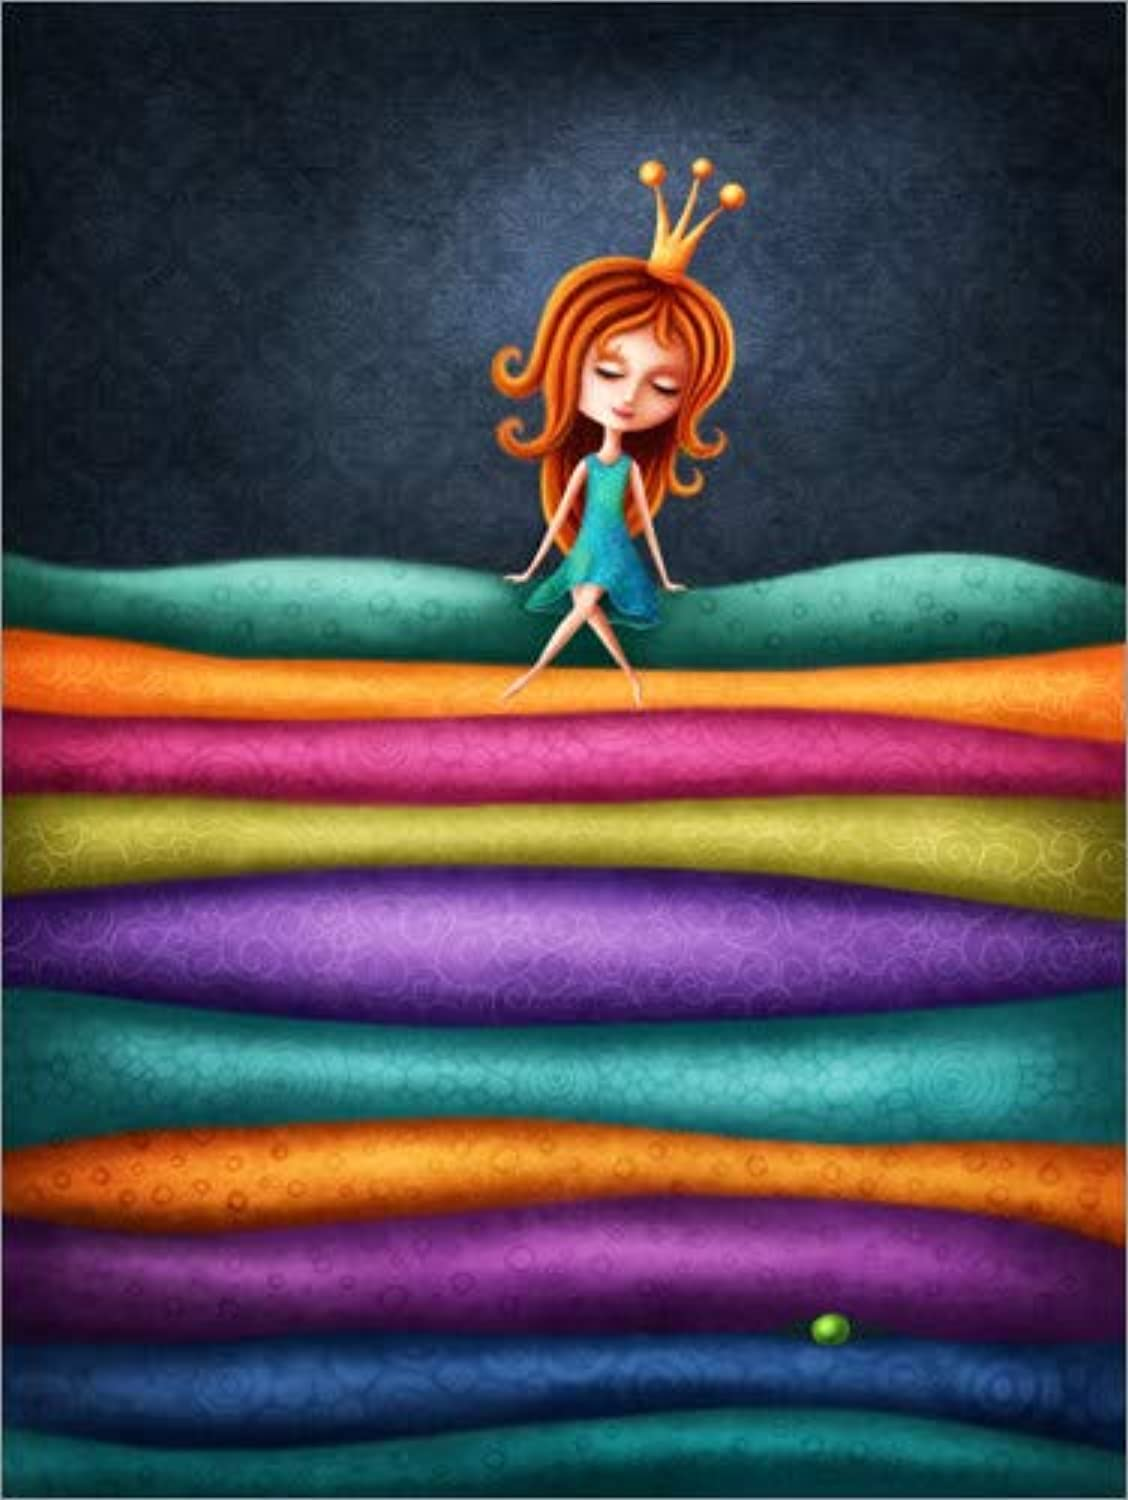 Posterlounge Acrylic print 90 x 120 cm  The Princess and the Pea by Elena Schweitzer